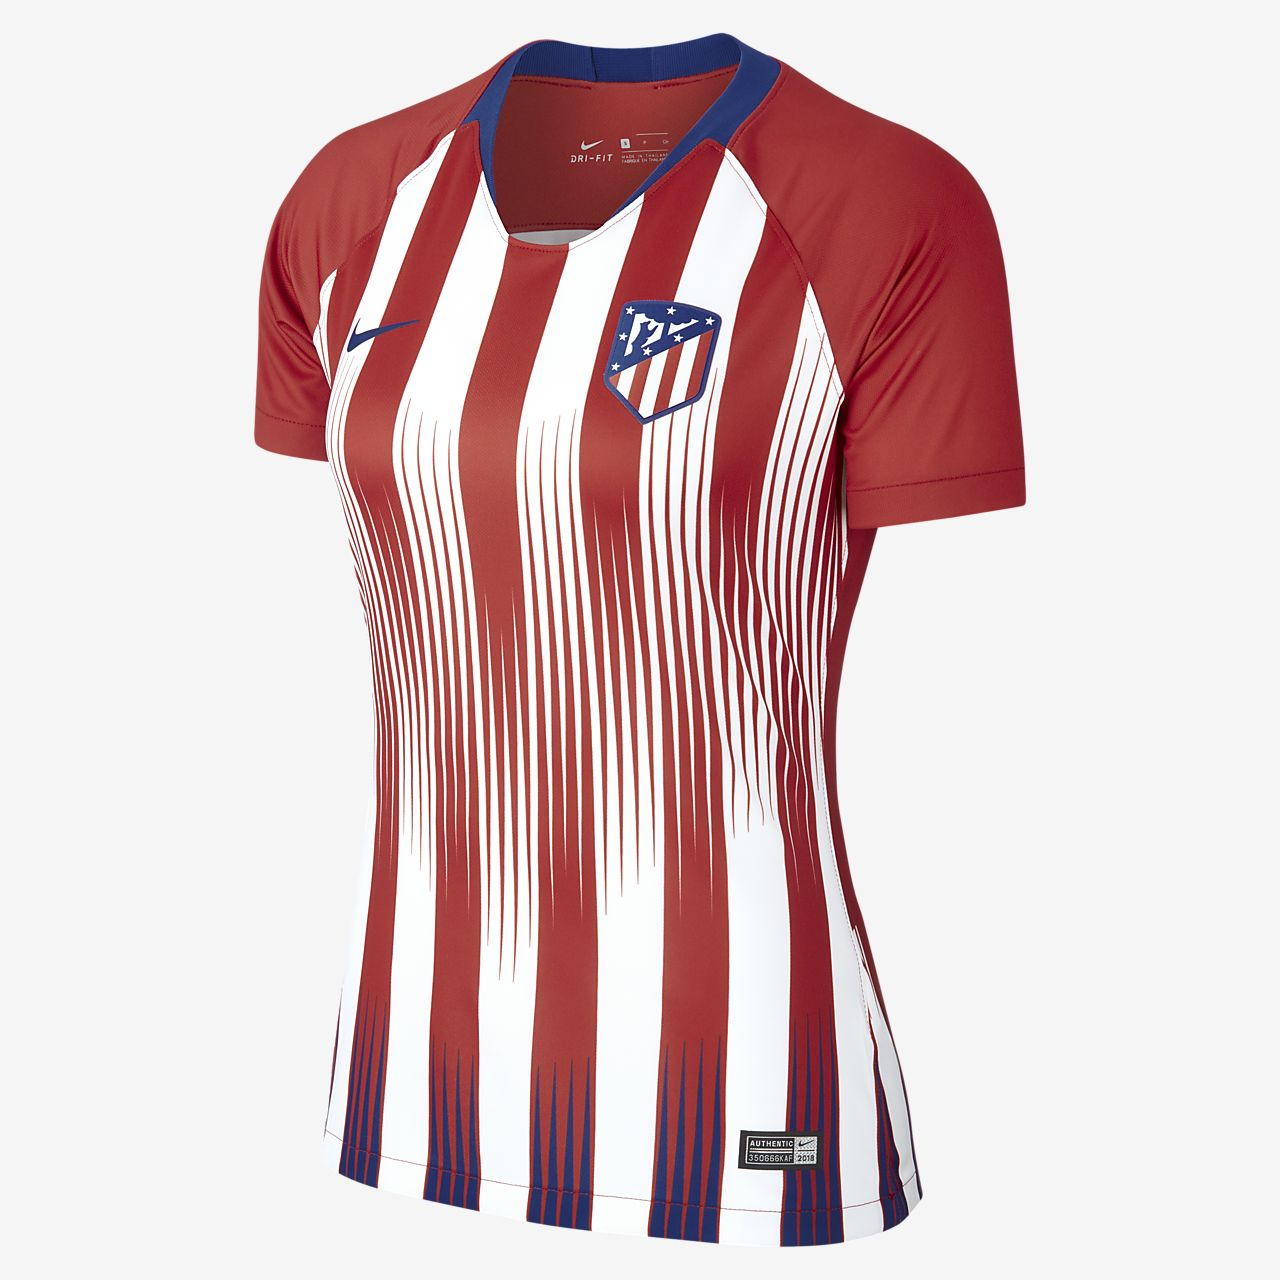 detailed look 13388 e0540 ... Camiseta de fútbol para mujer de local Stadium del Atlético de Madrid  2018 19